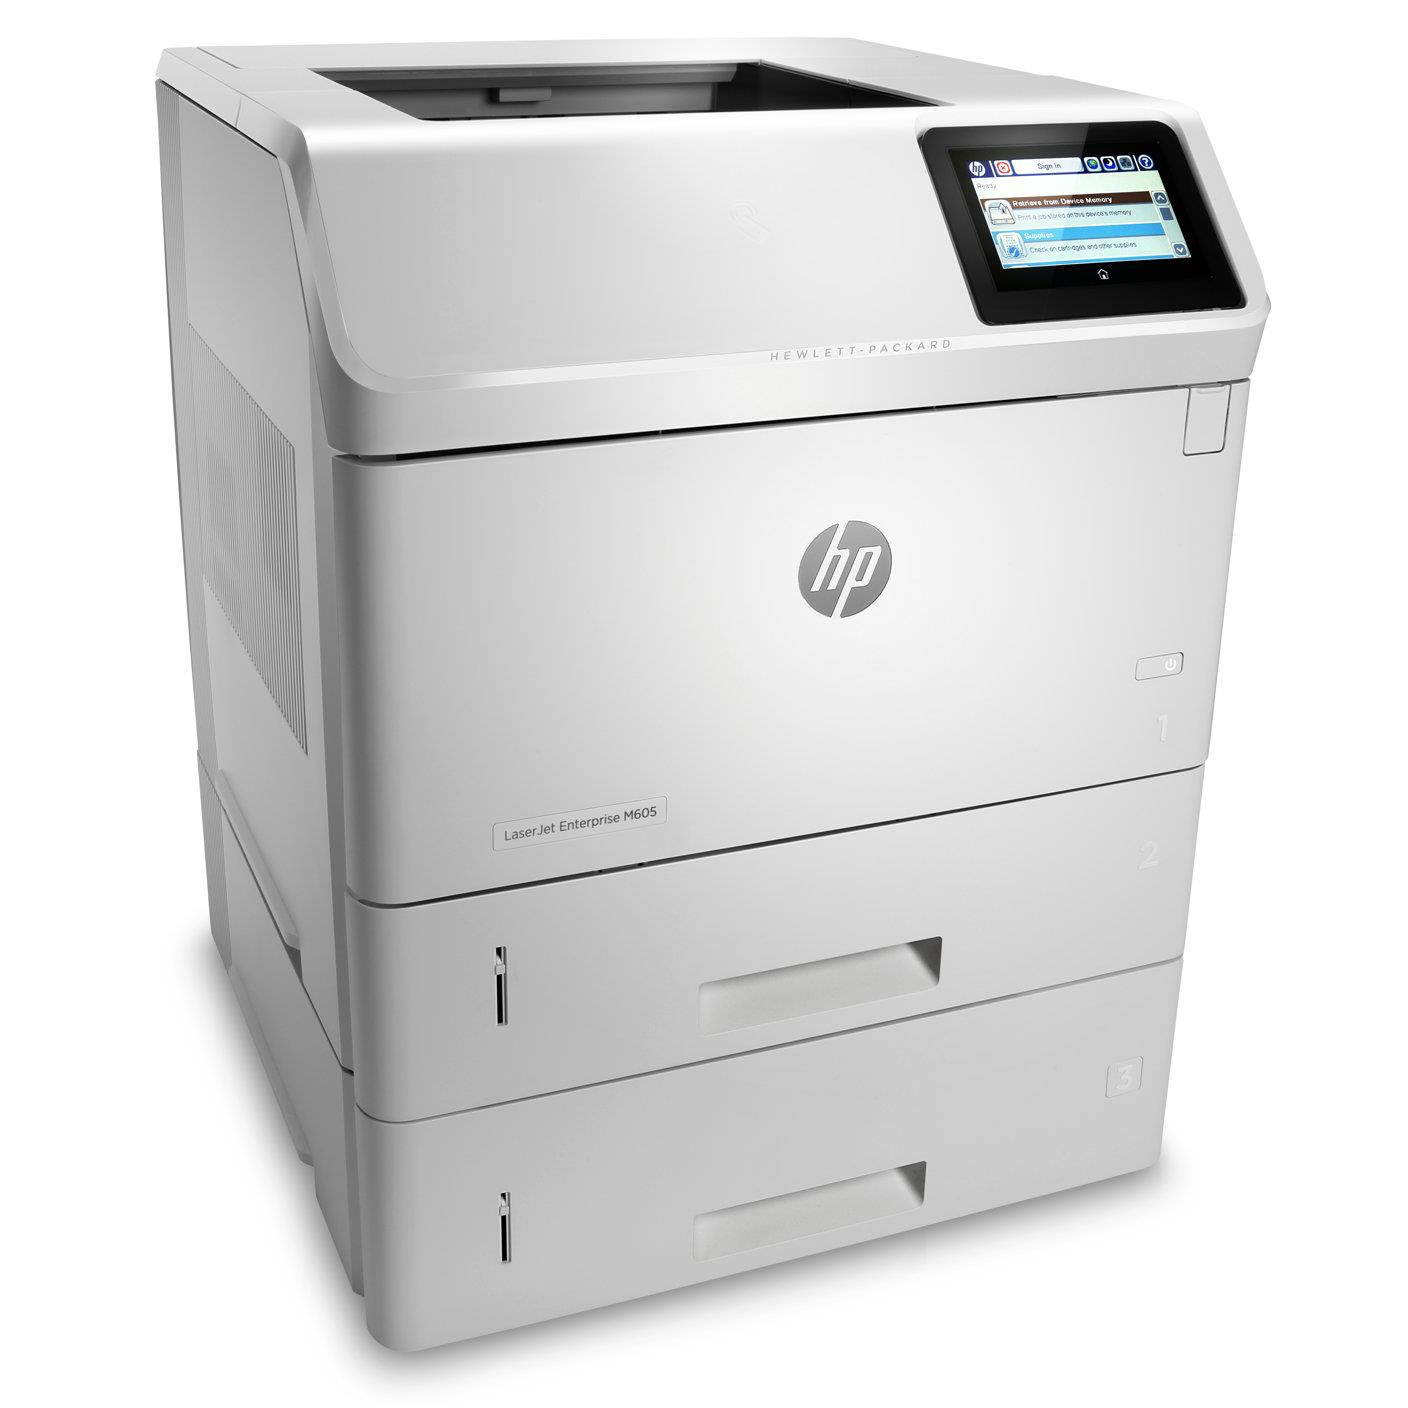 HP LaserJet Ent 600 M605x Printer